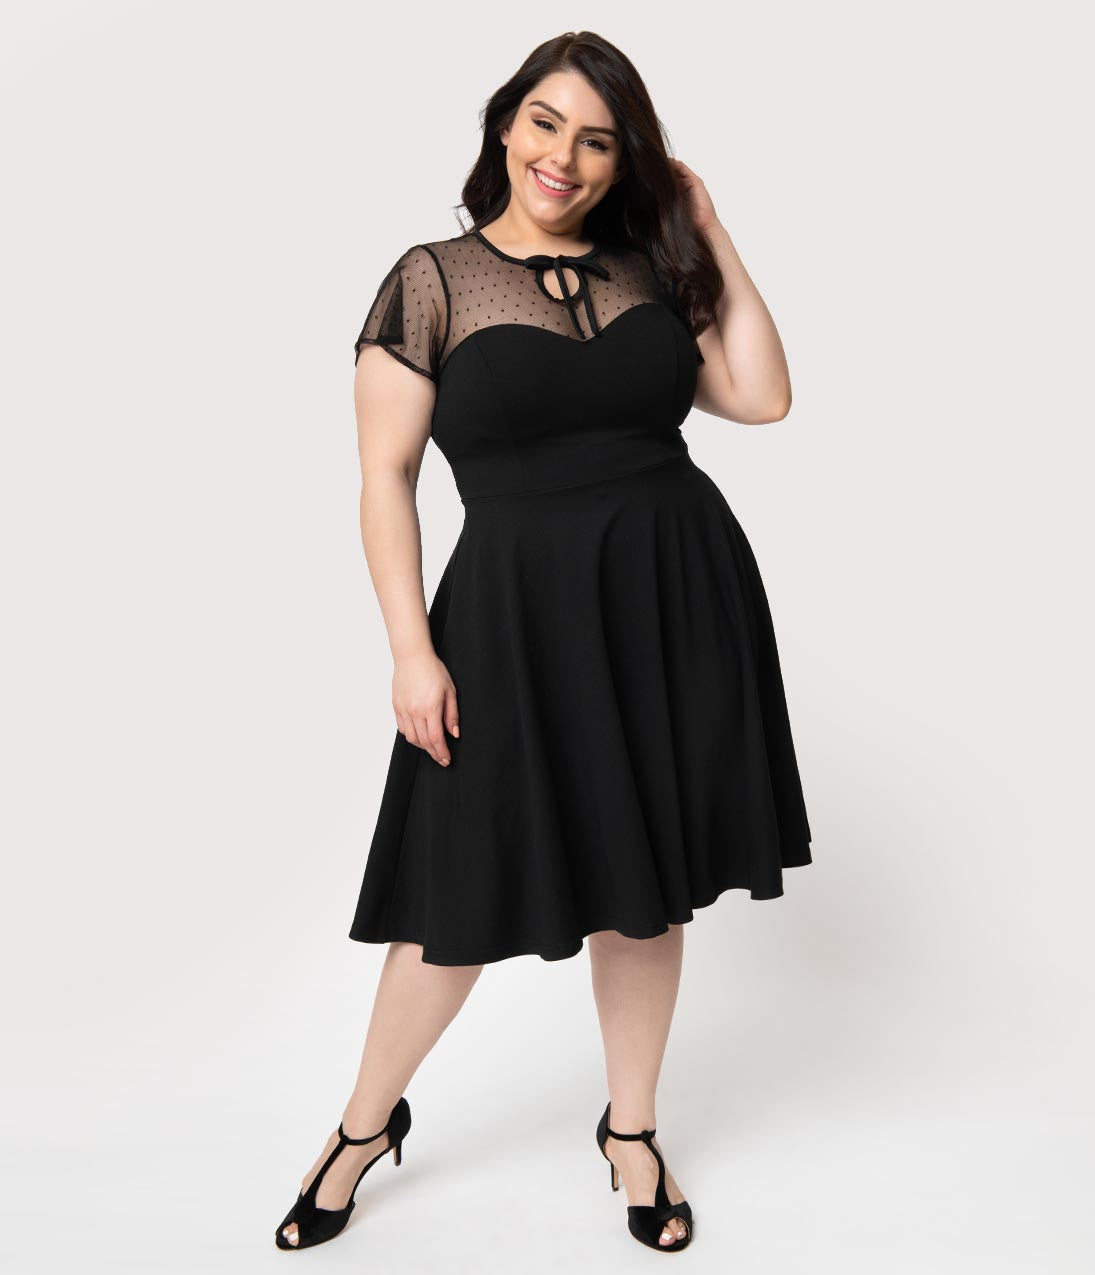 1940s Plus Size Dresses | Swing Dress, Tea Dress Unique Vintage Plus Size 1940S Style Black Swiss Dotted Mesh Heather Midi Dress $98.00 AT vintagedancer.com